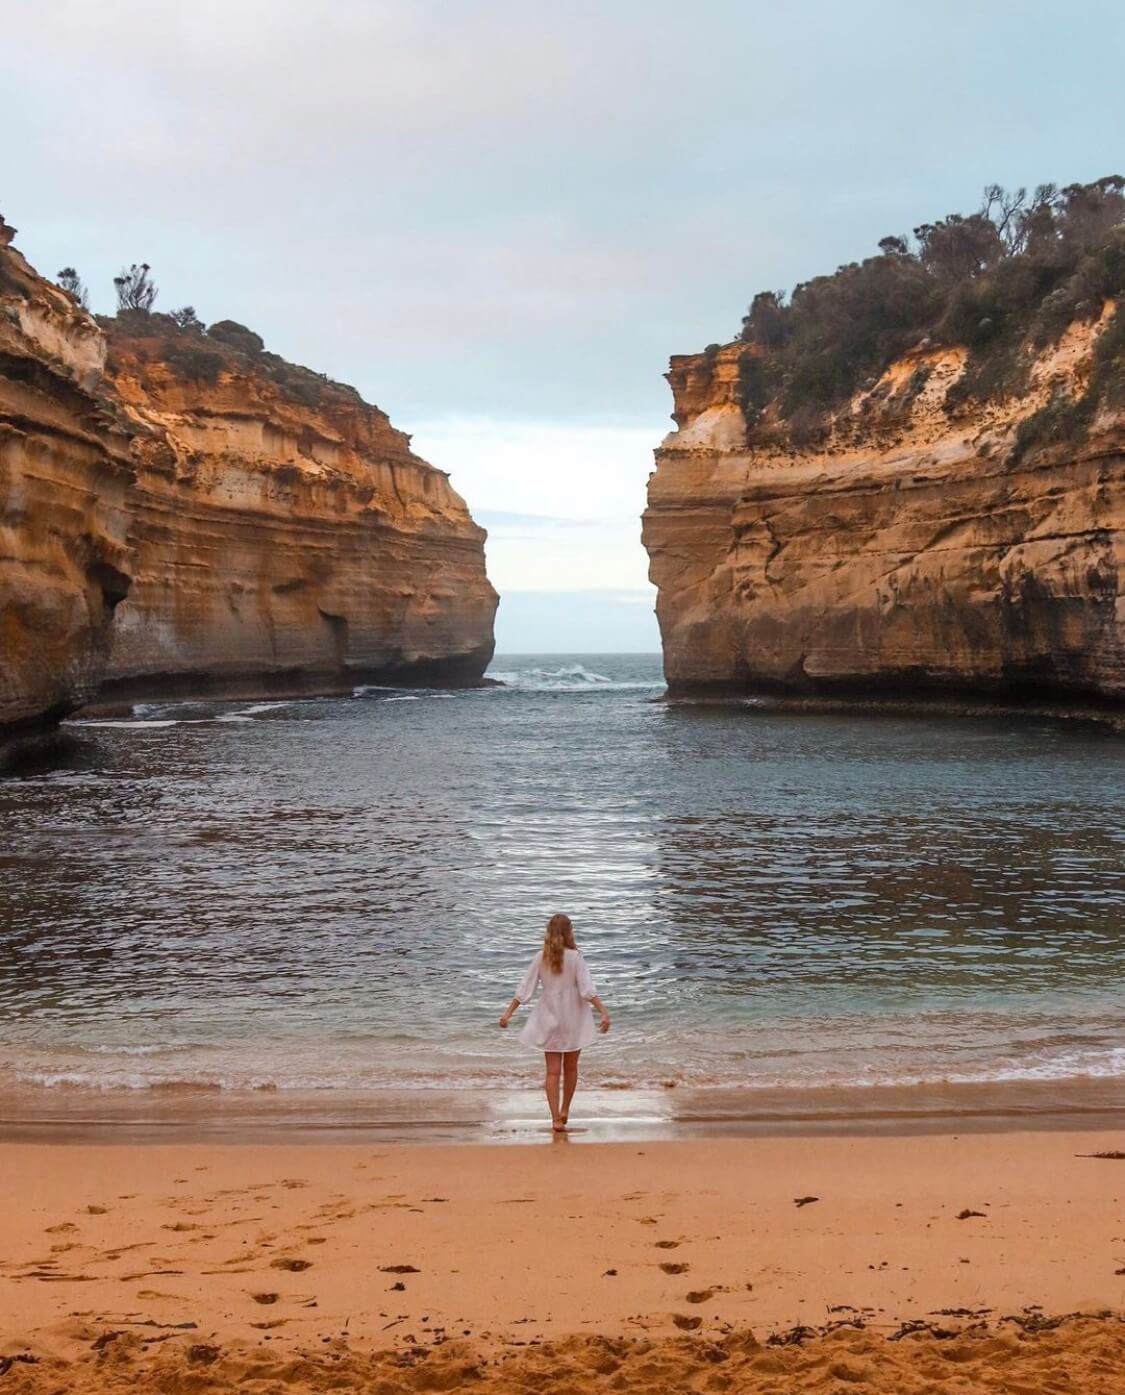 #GoHyperlocal Guide to Great Ocean Road - Curated by Travis for your next Australian getaway. Featuring Loch Ard Gorge.